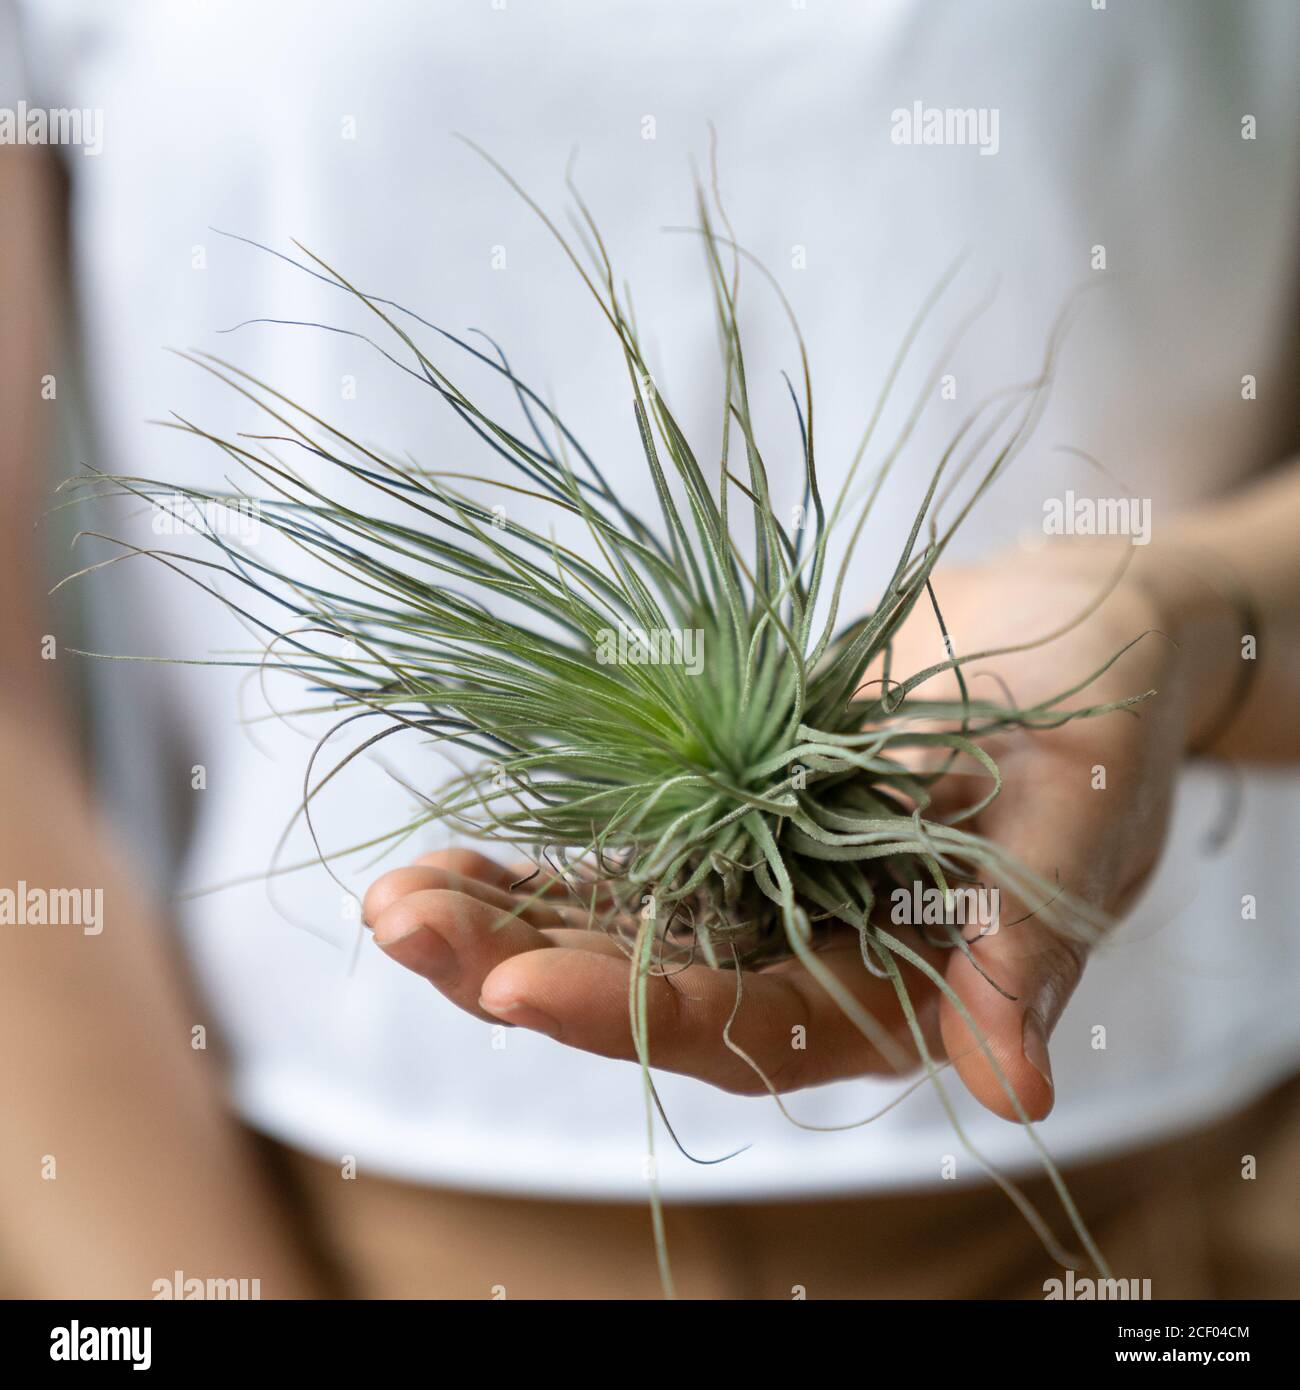 Woman Holding On Hand Air Plant Tillandsia Plant That Does Not Require A Flower Pot Stock Photo Alamy